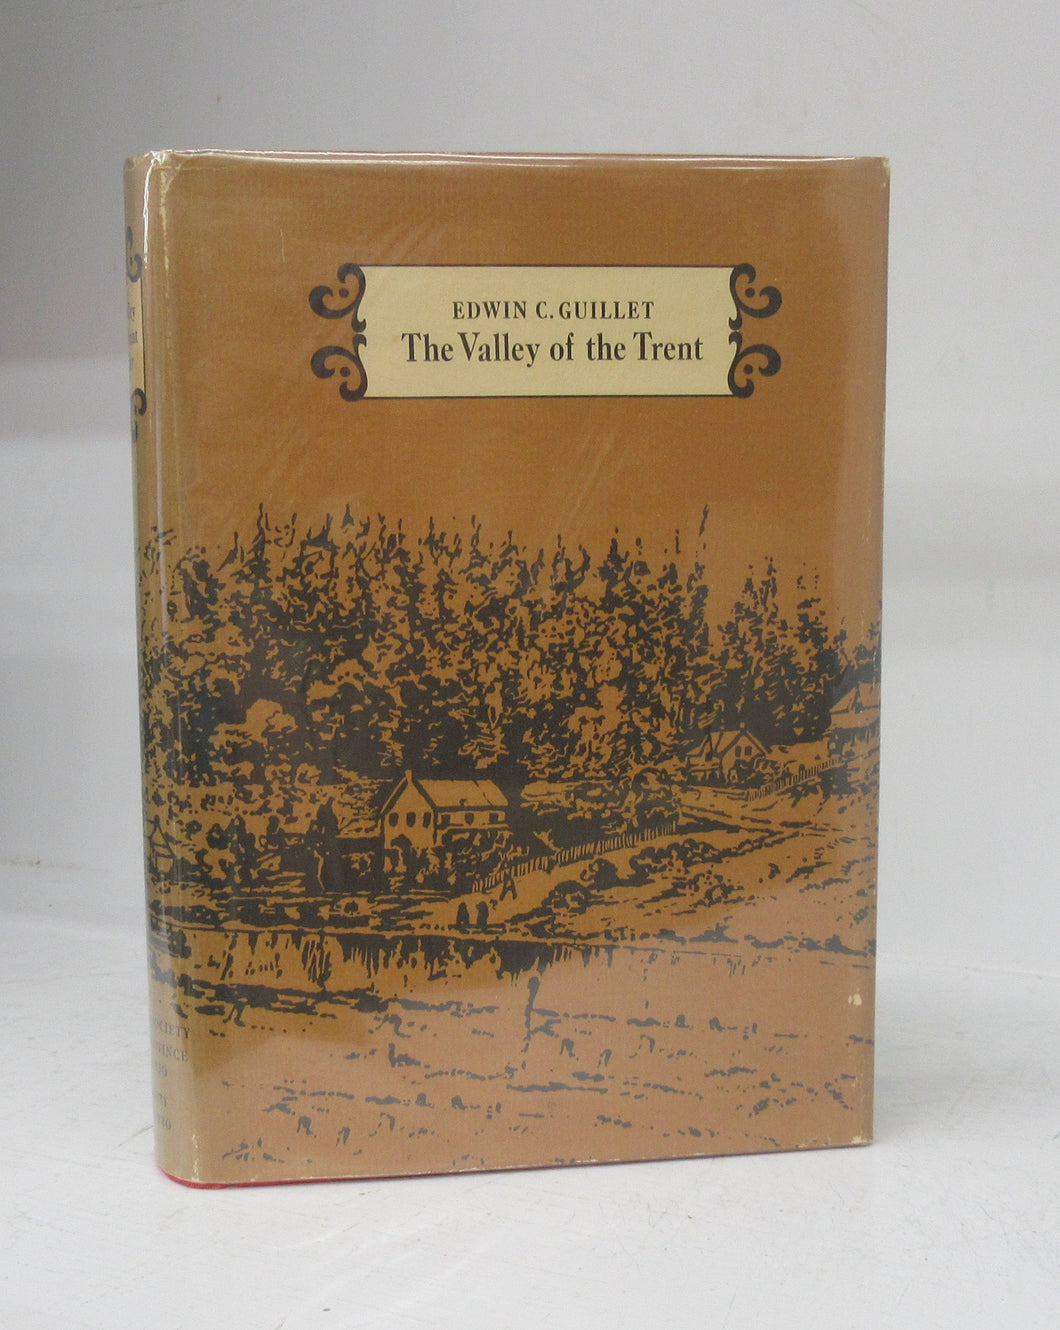 The Valley of the Trent